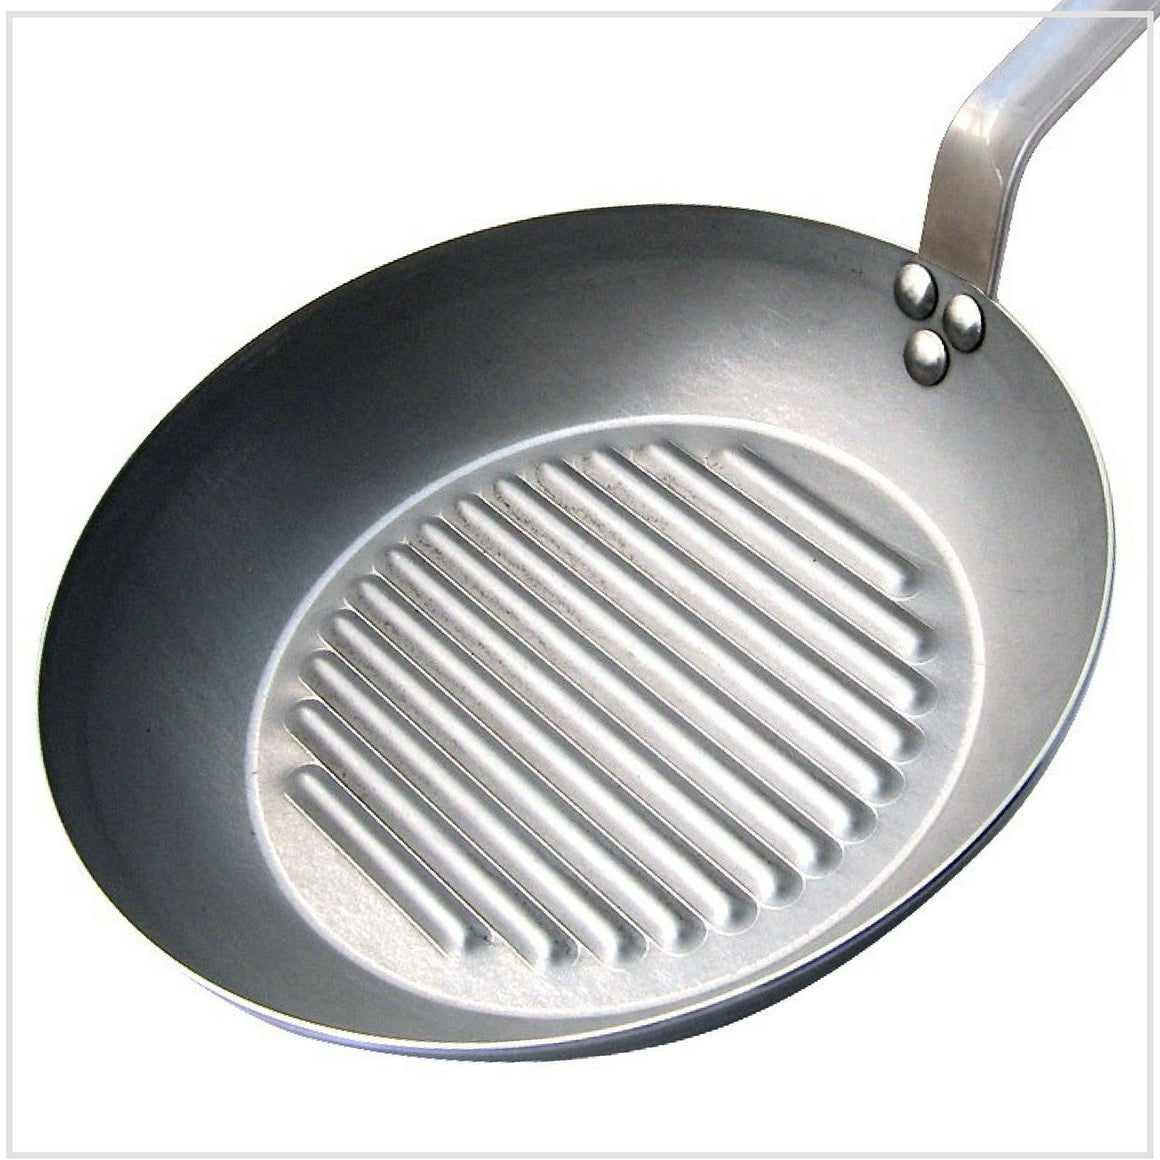 De Buyer Steak/Grill Pan 26cm